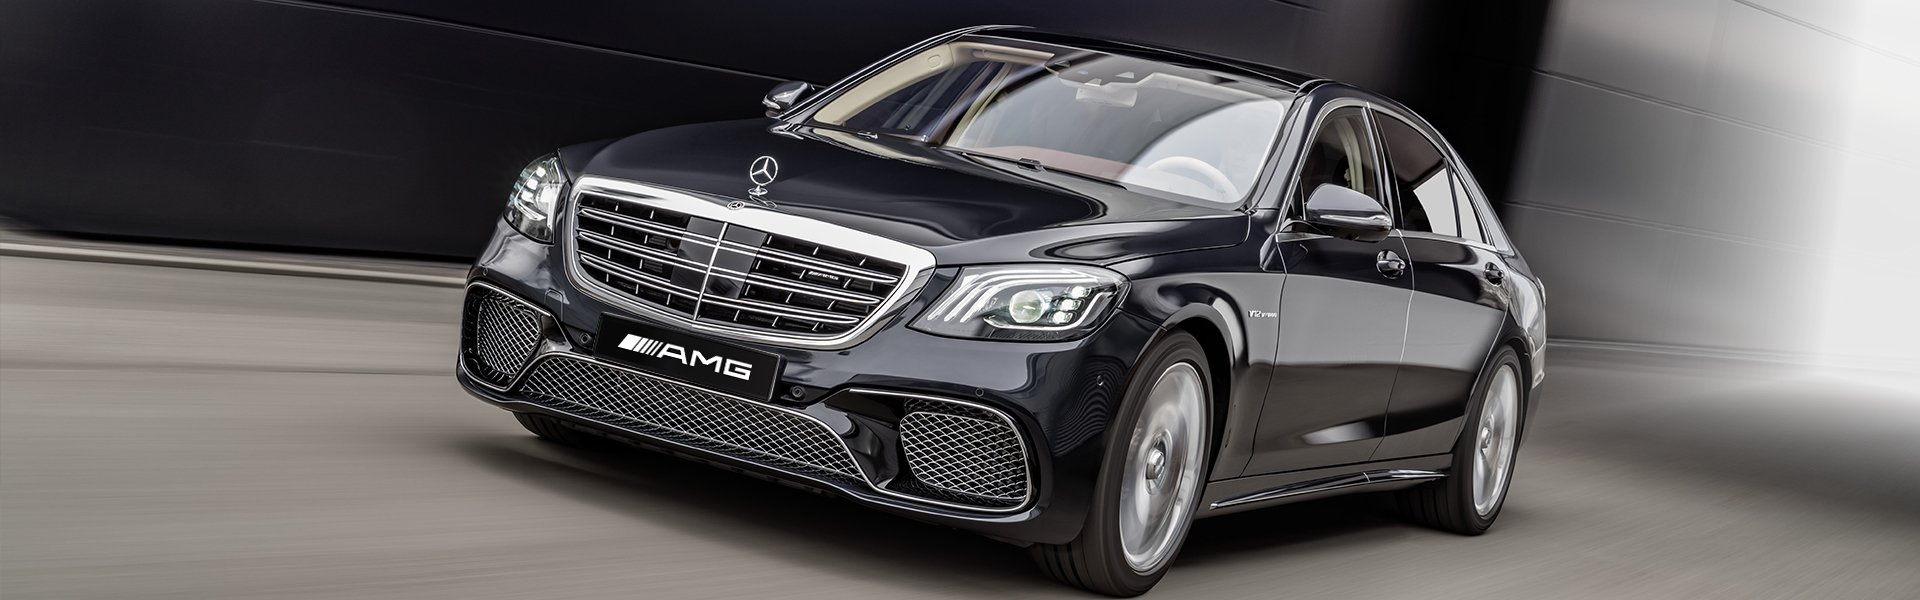 Mercedes-AMG S-Класс седан